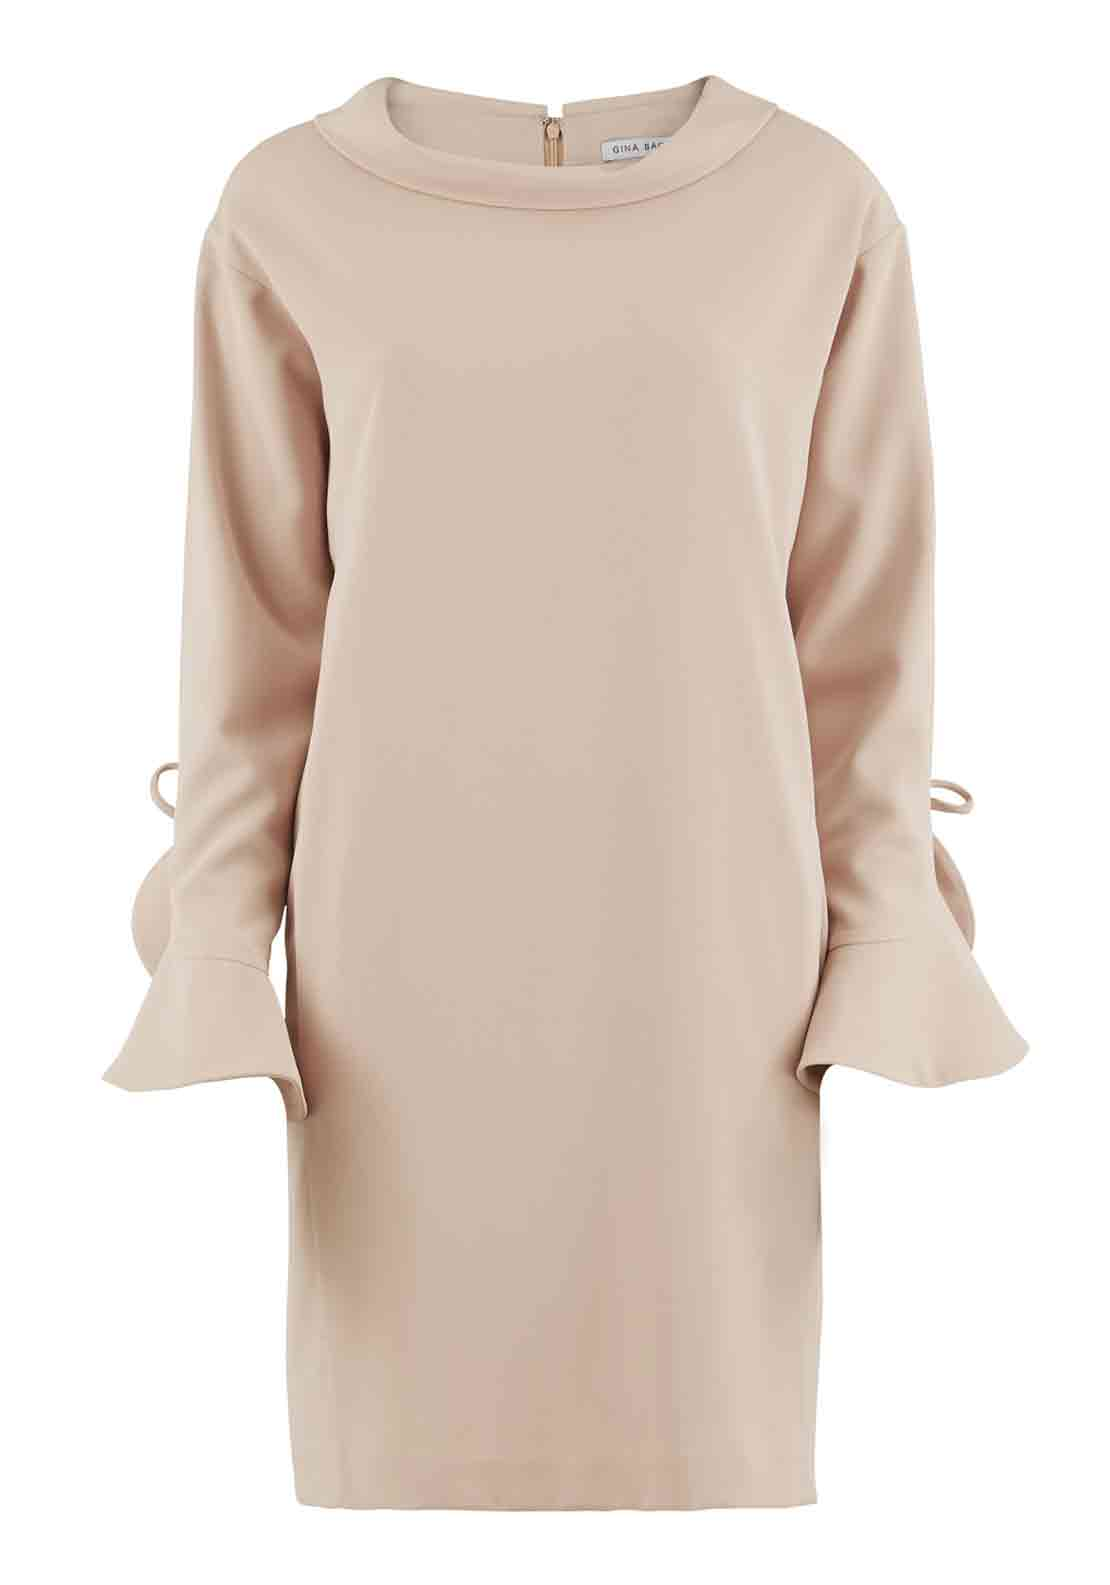 Gina Bacconi  Cropped Sleeve Tunic Dress, Apricot Pink